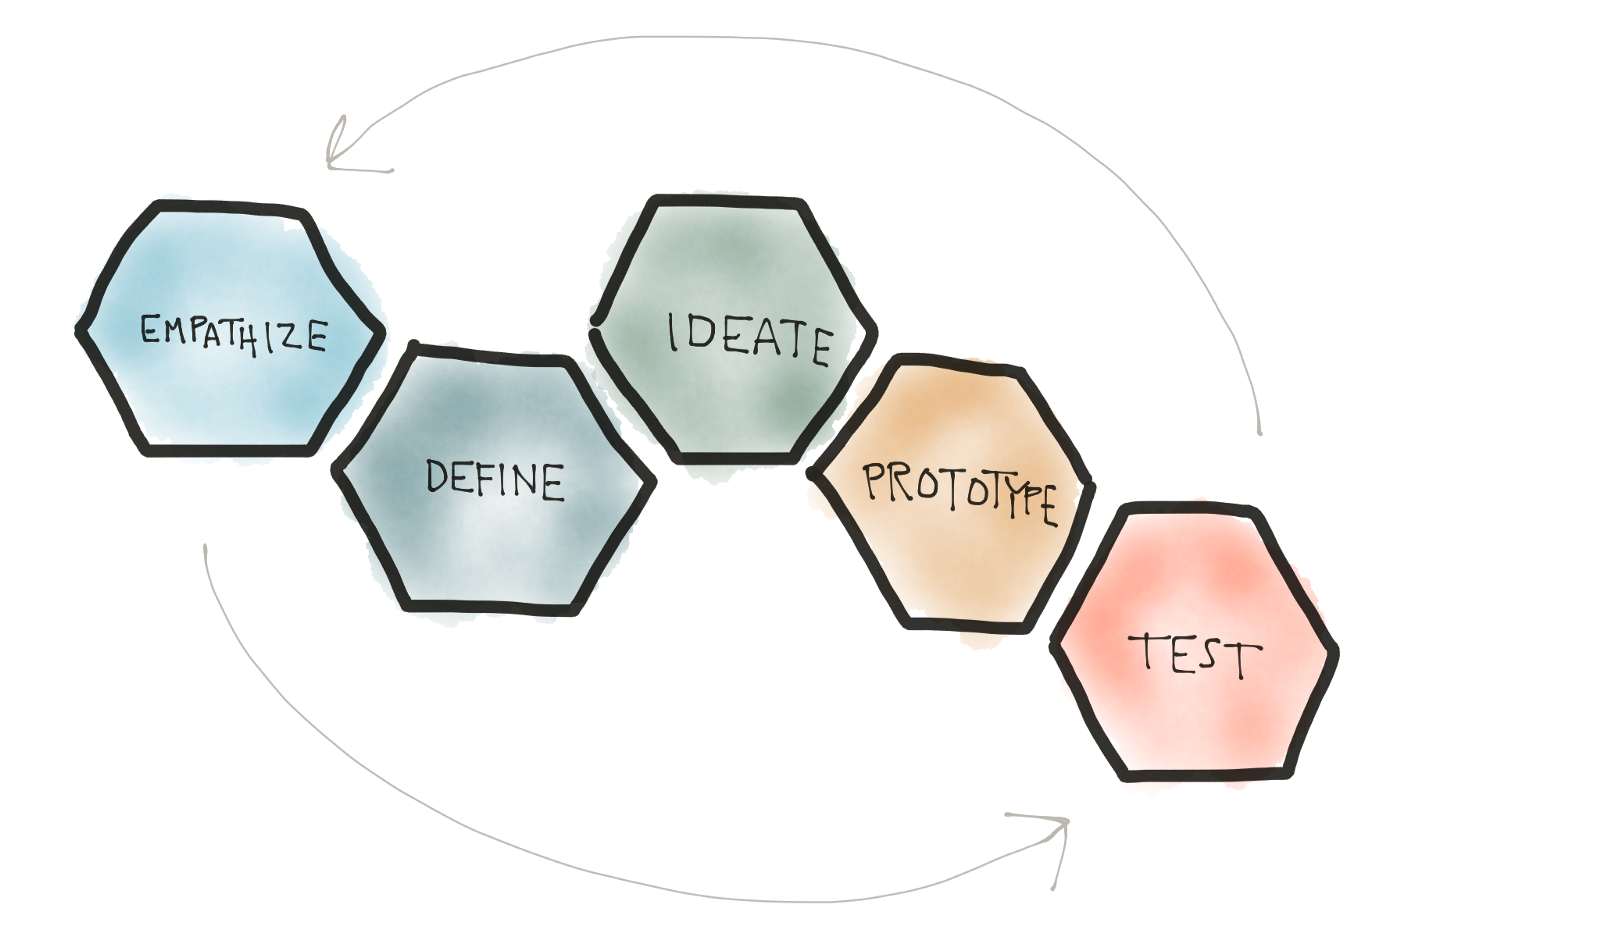 Process drawing. Human centered design diagram